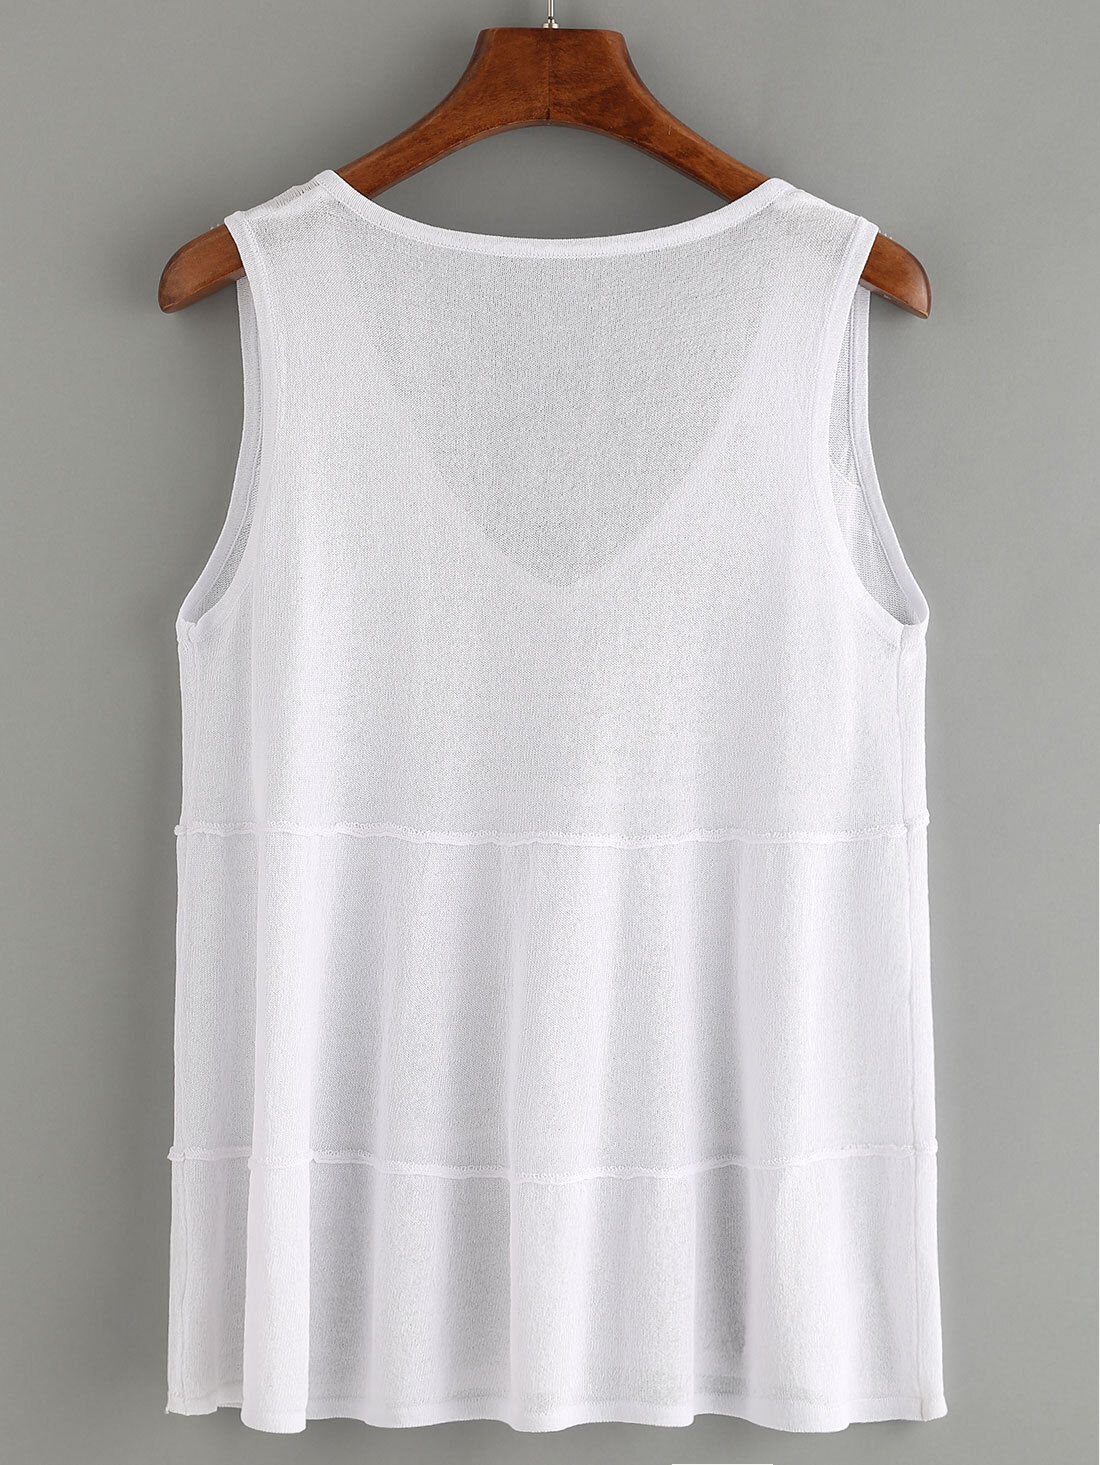 White V Neck Knitted Tank Top -SheIn(Sheinside)